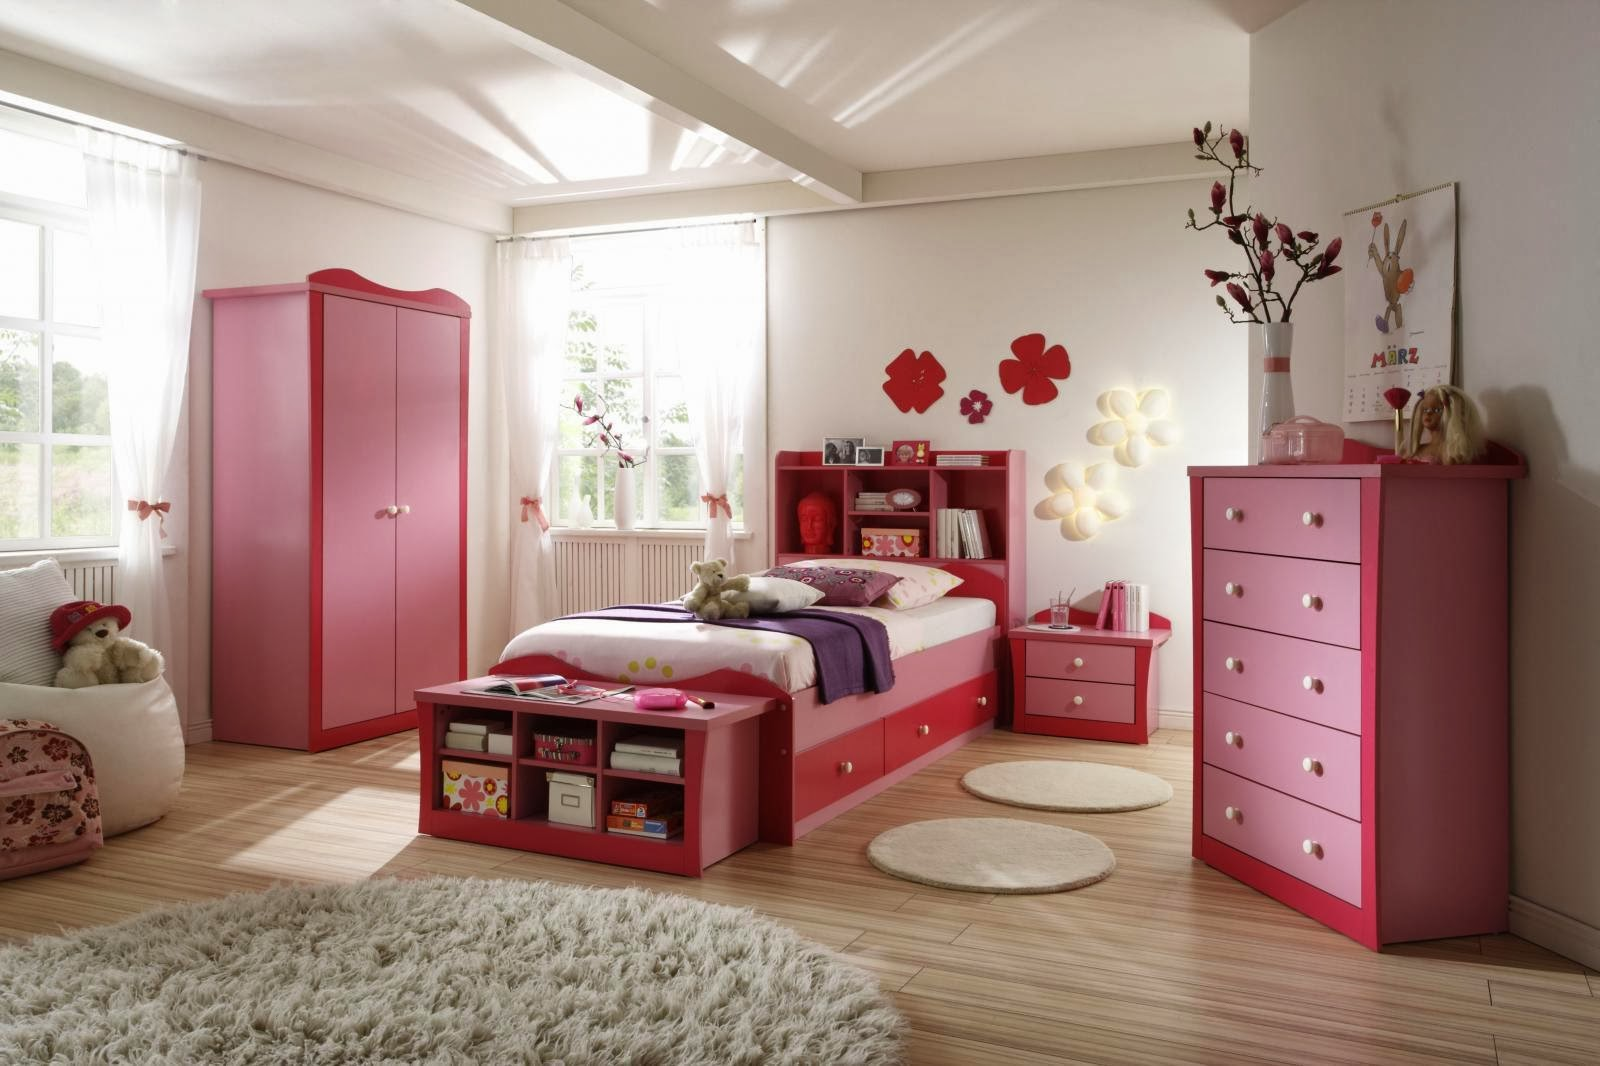 Home Decorating Interior Design Ideas: Pink Bedding for a ... on Girls Bedroom Ideas For Very Small Rooms  id=24230